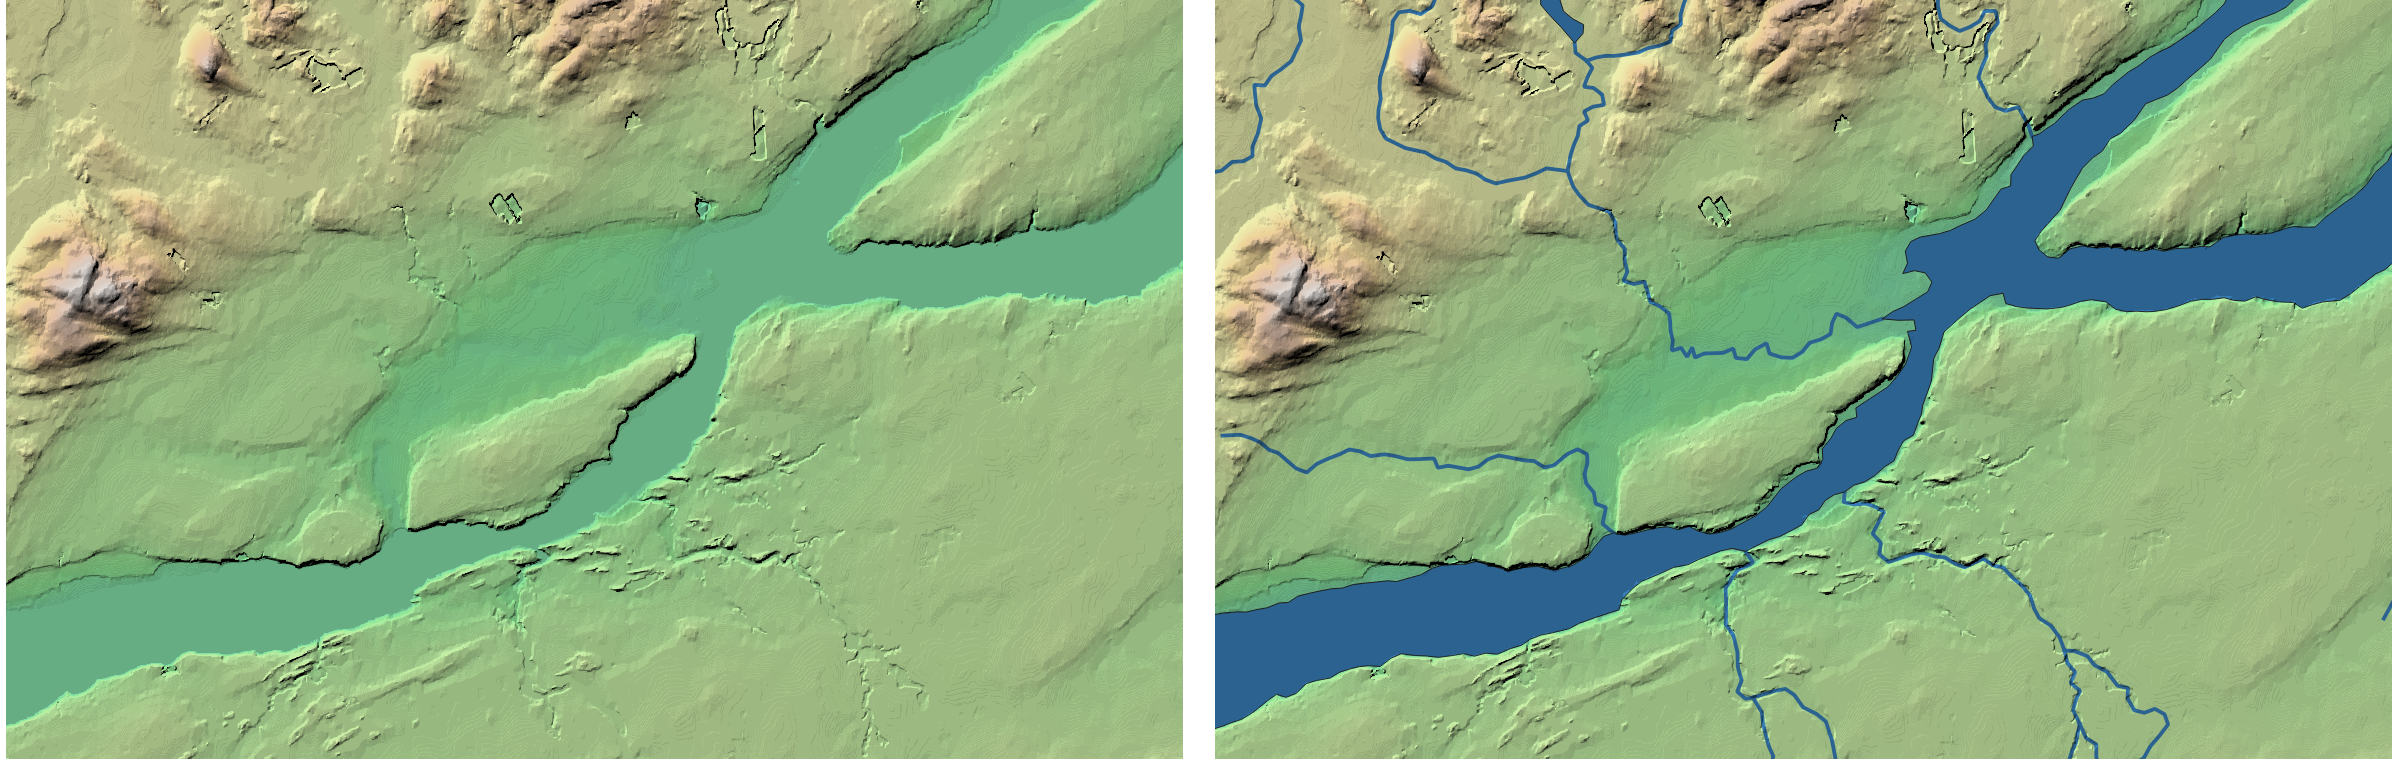 Québec City topographic map - with and without hydrography